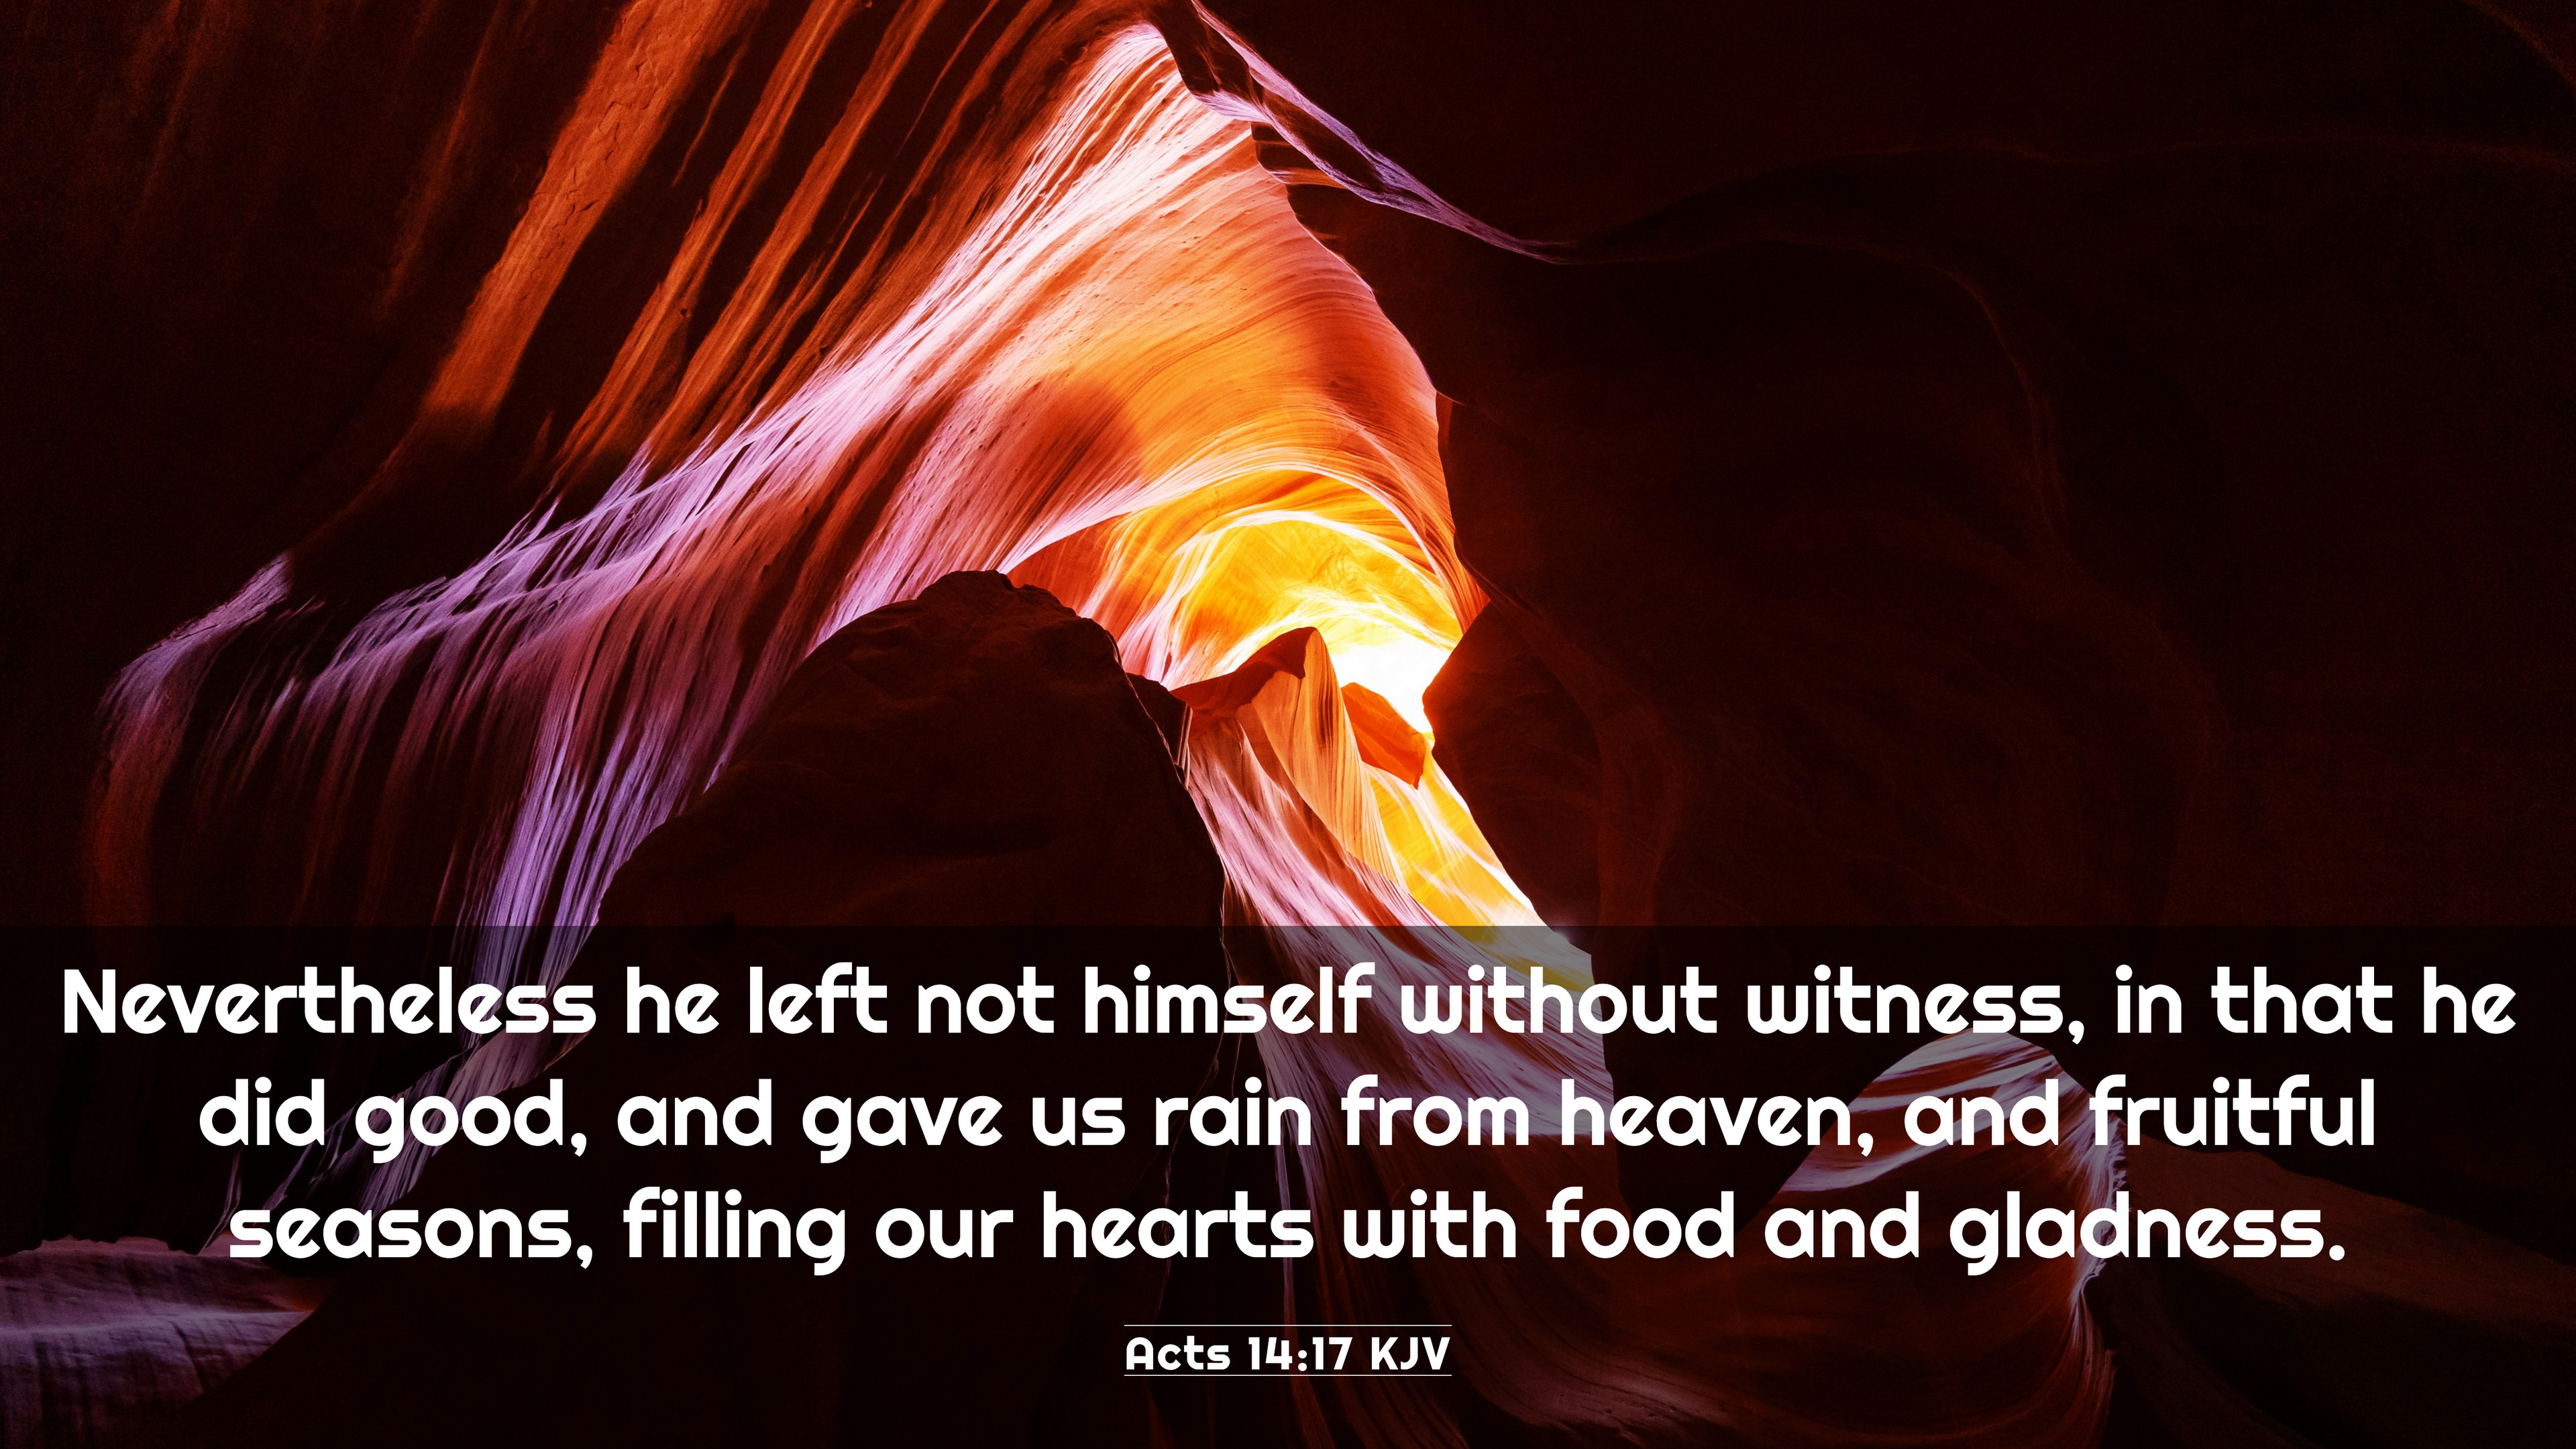 Acts 14:17 KJV 4K Wallpaper - Nevertheless he left not himself without  witness,